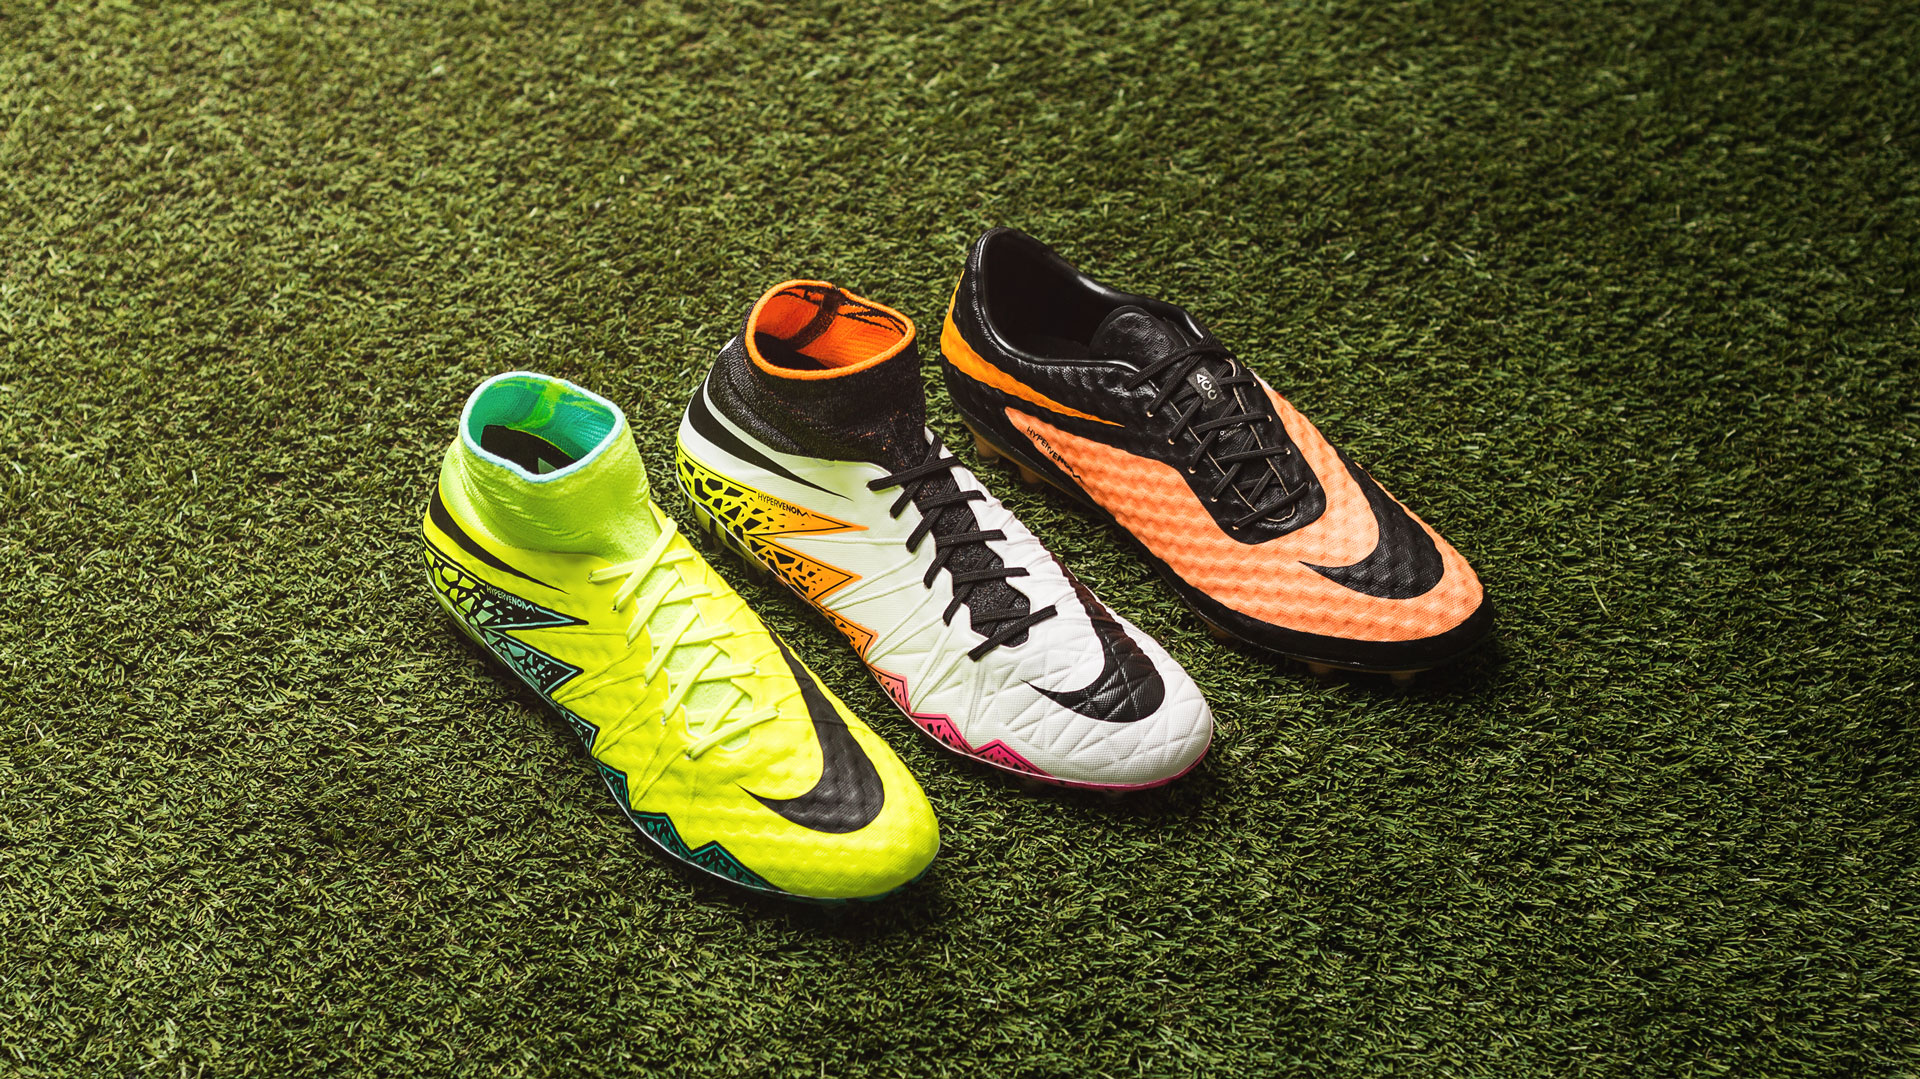 factory outlet classic shoes clearance prices NikeSkin is back | The development of the Nike Hypervenom